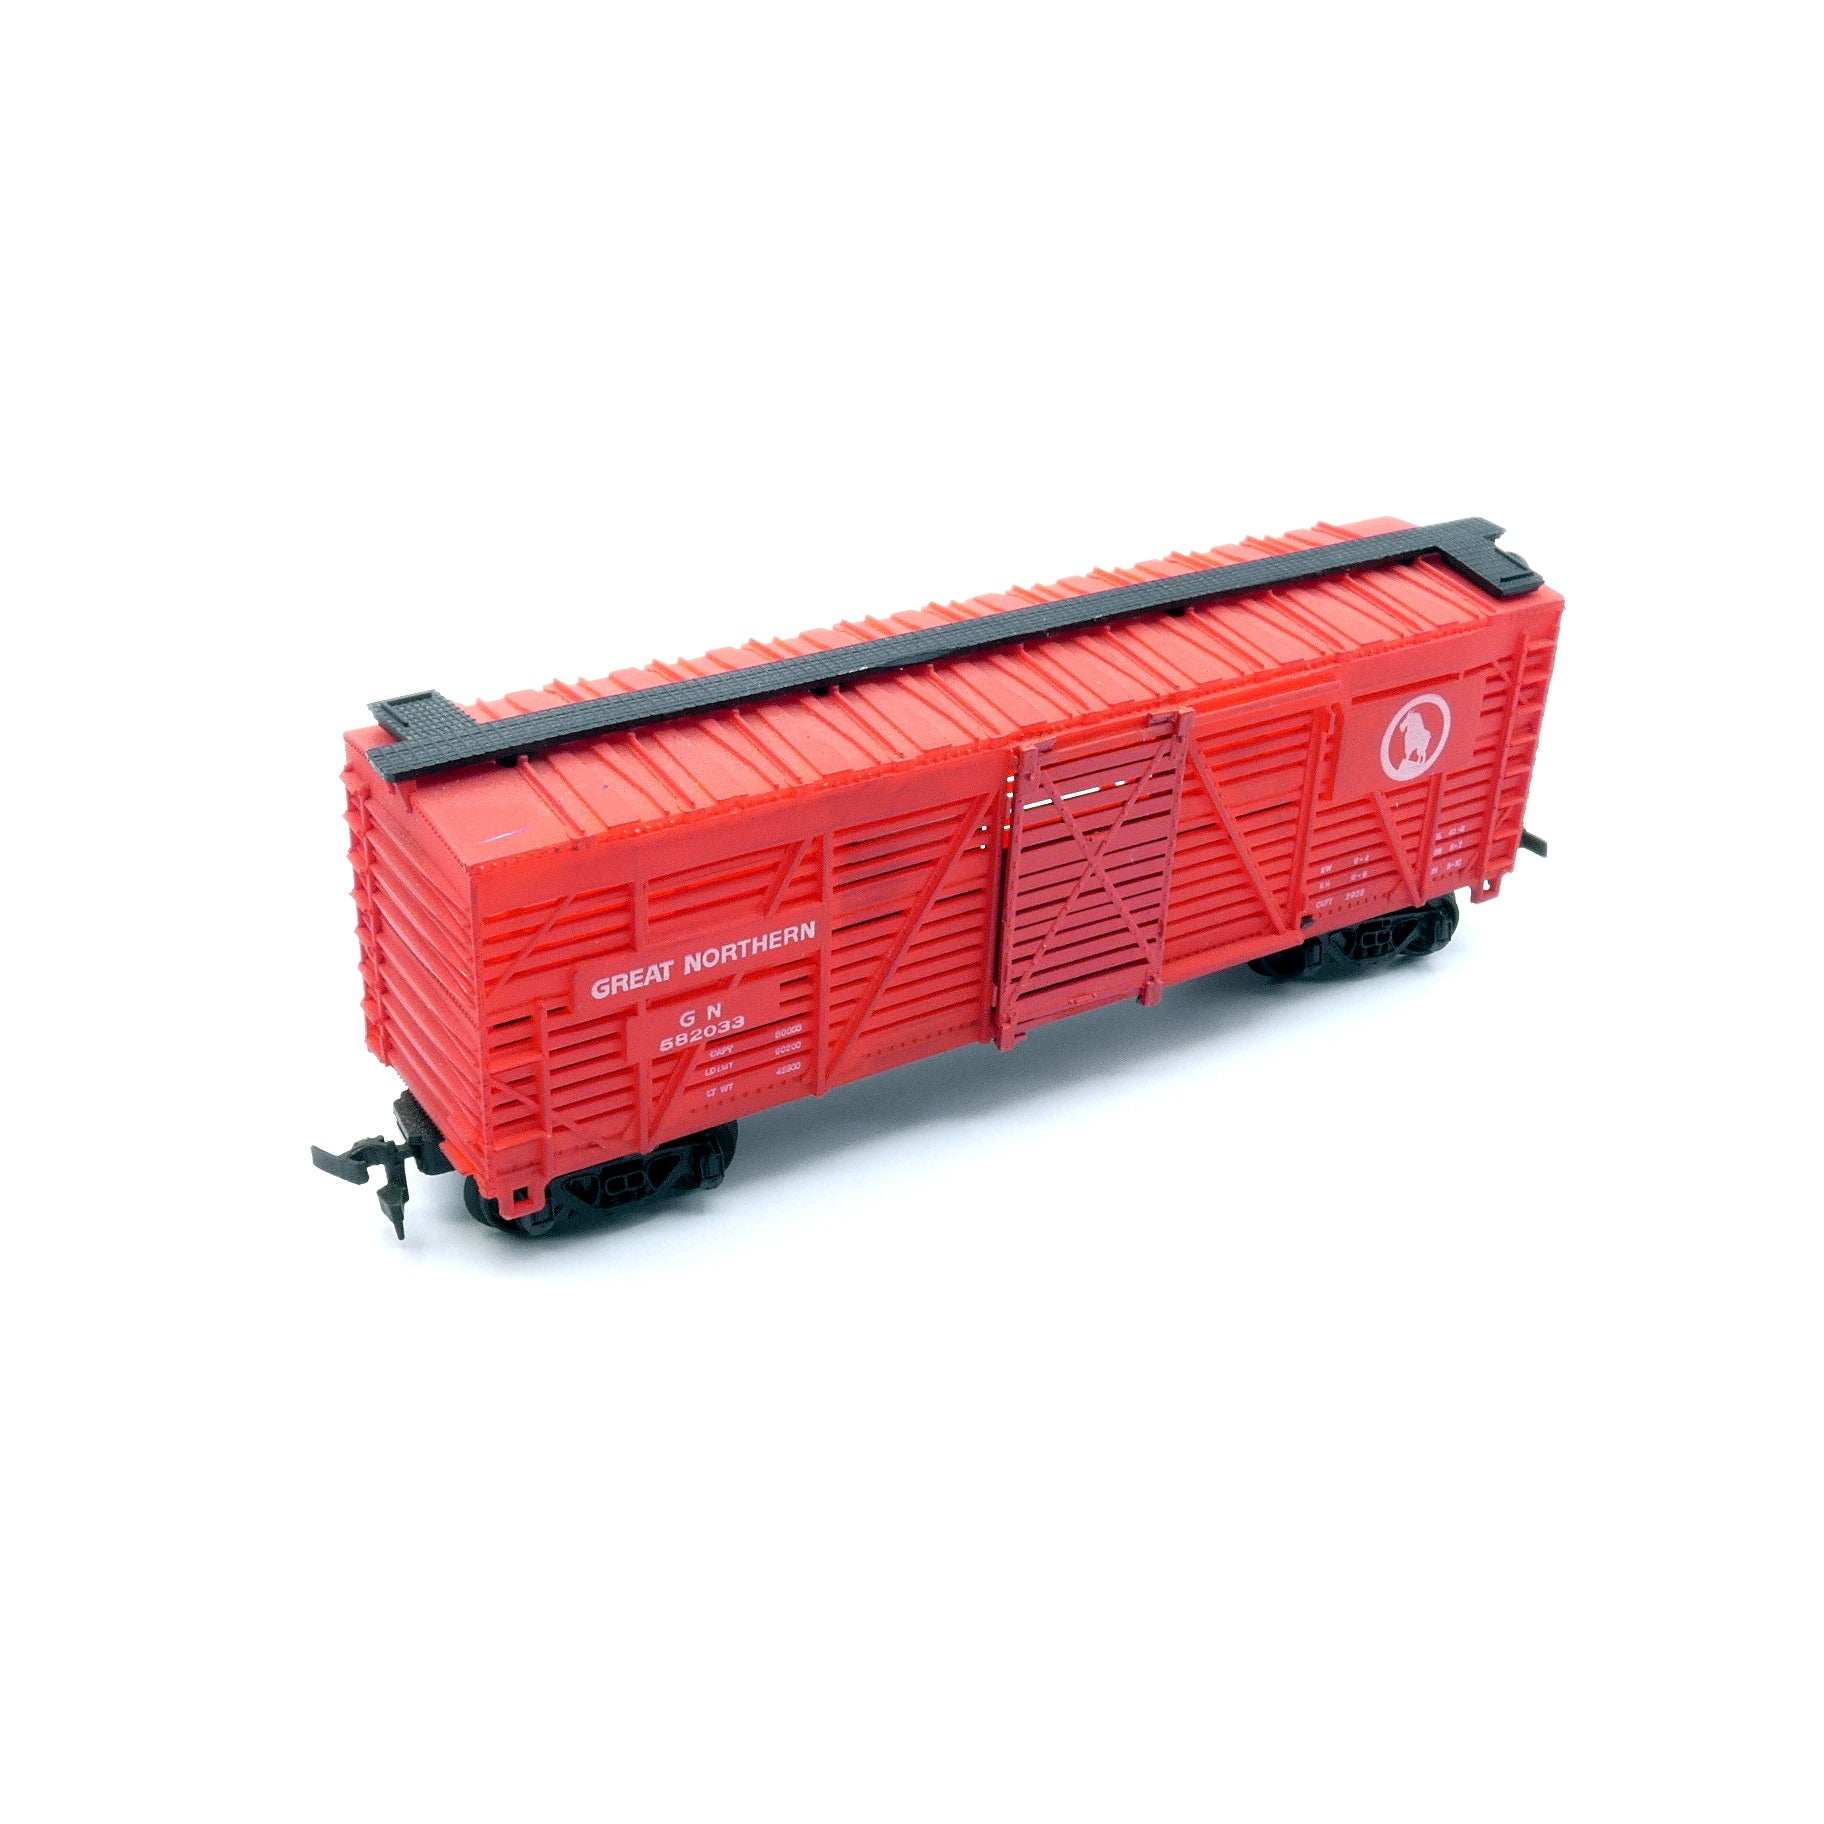 Vintage Model Trains - H/O Bachmann Great Northern Box Car